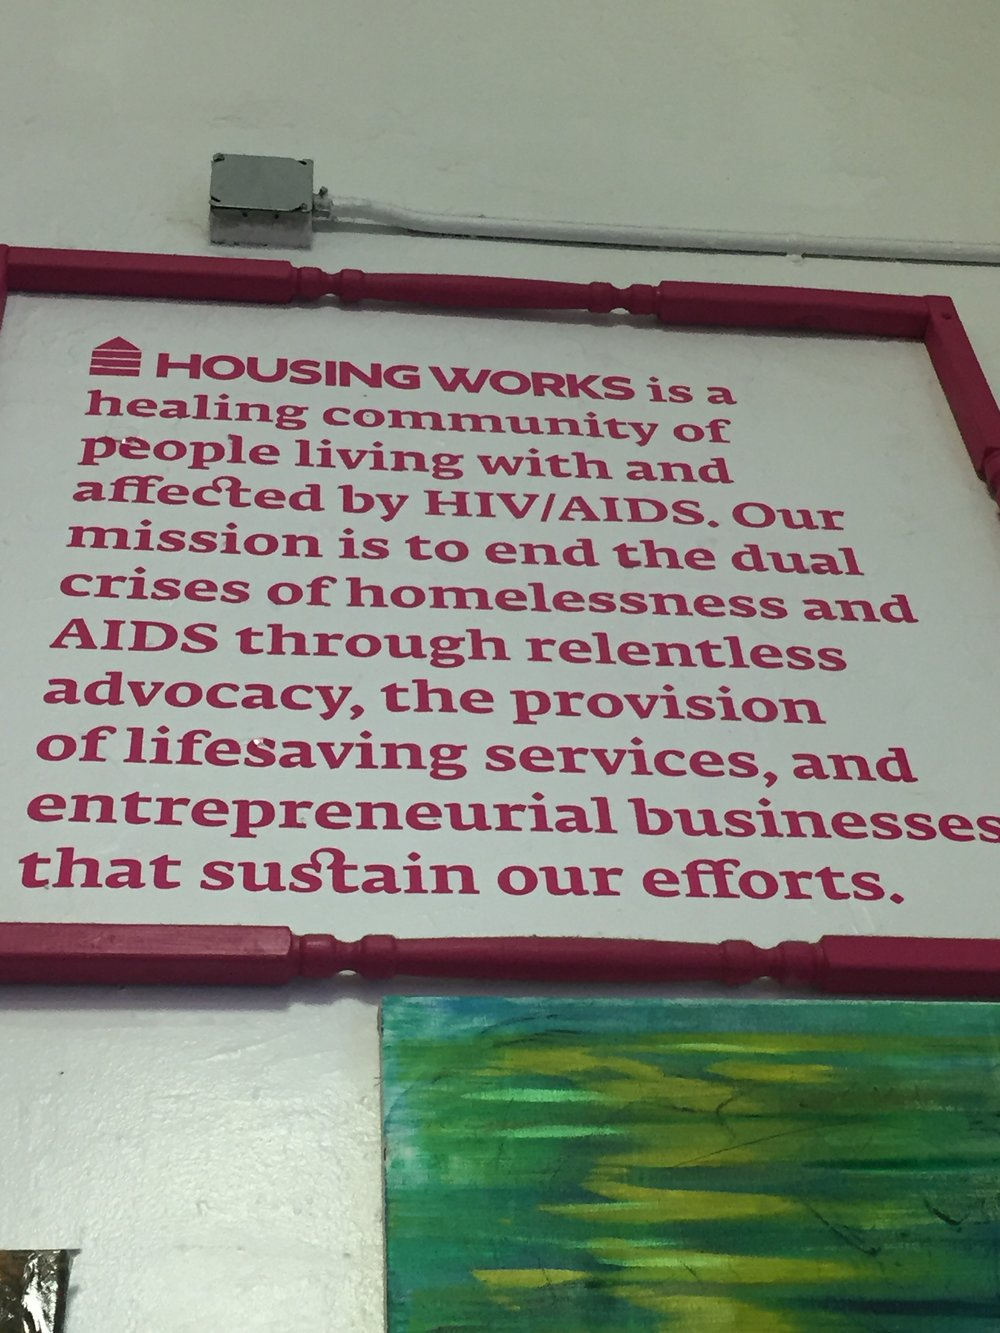 Housing Works mission is to help those affected by HIV/AIDS.